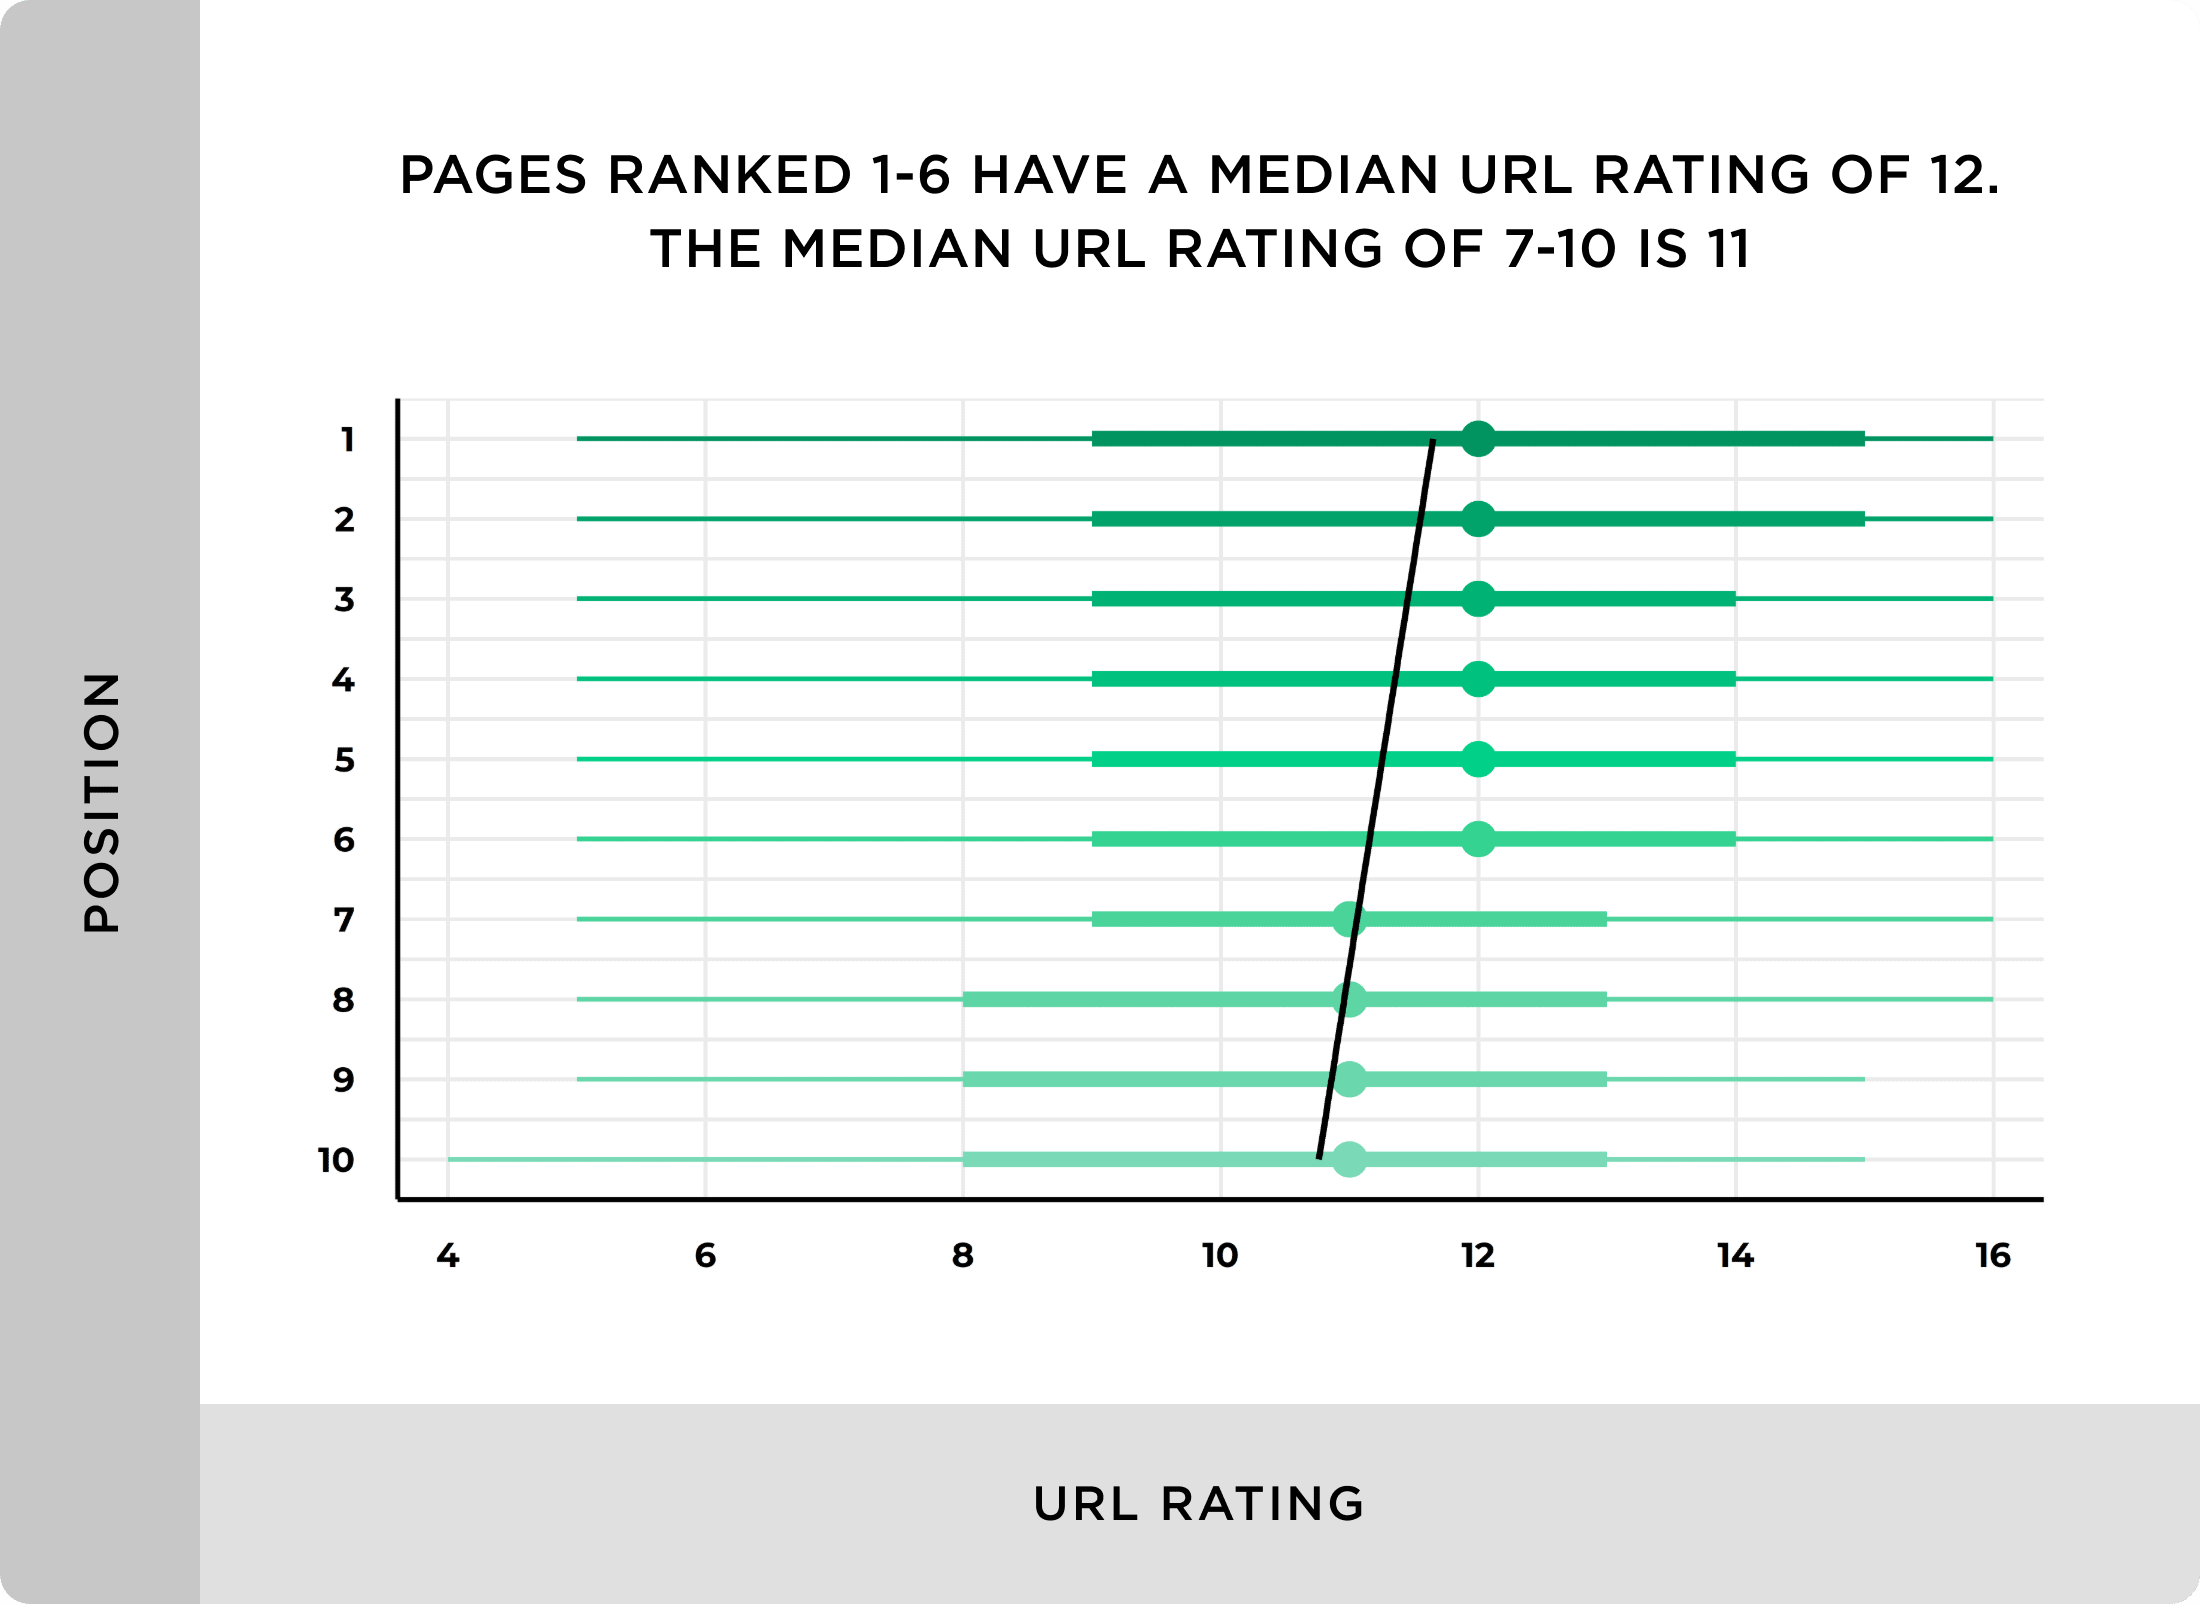 Pages ranked 1-6 have a median URL Rating of 12. The median URL Rating of 7-10 is 11